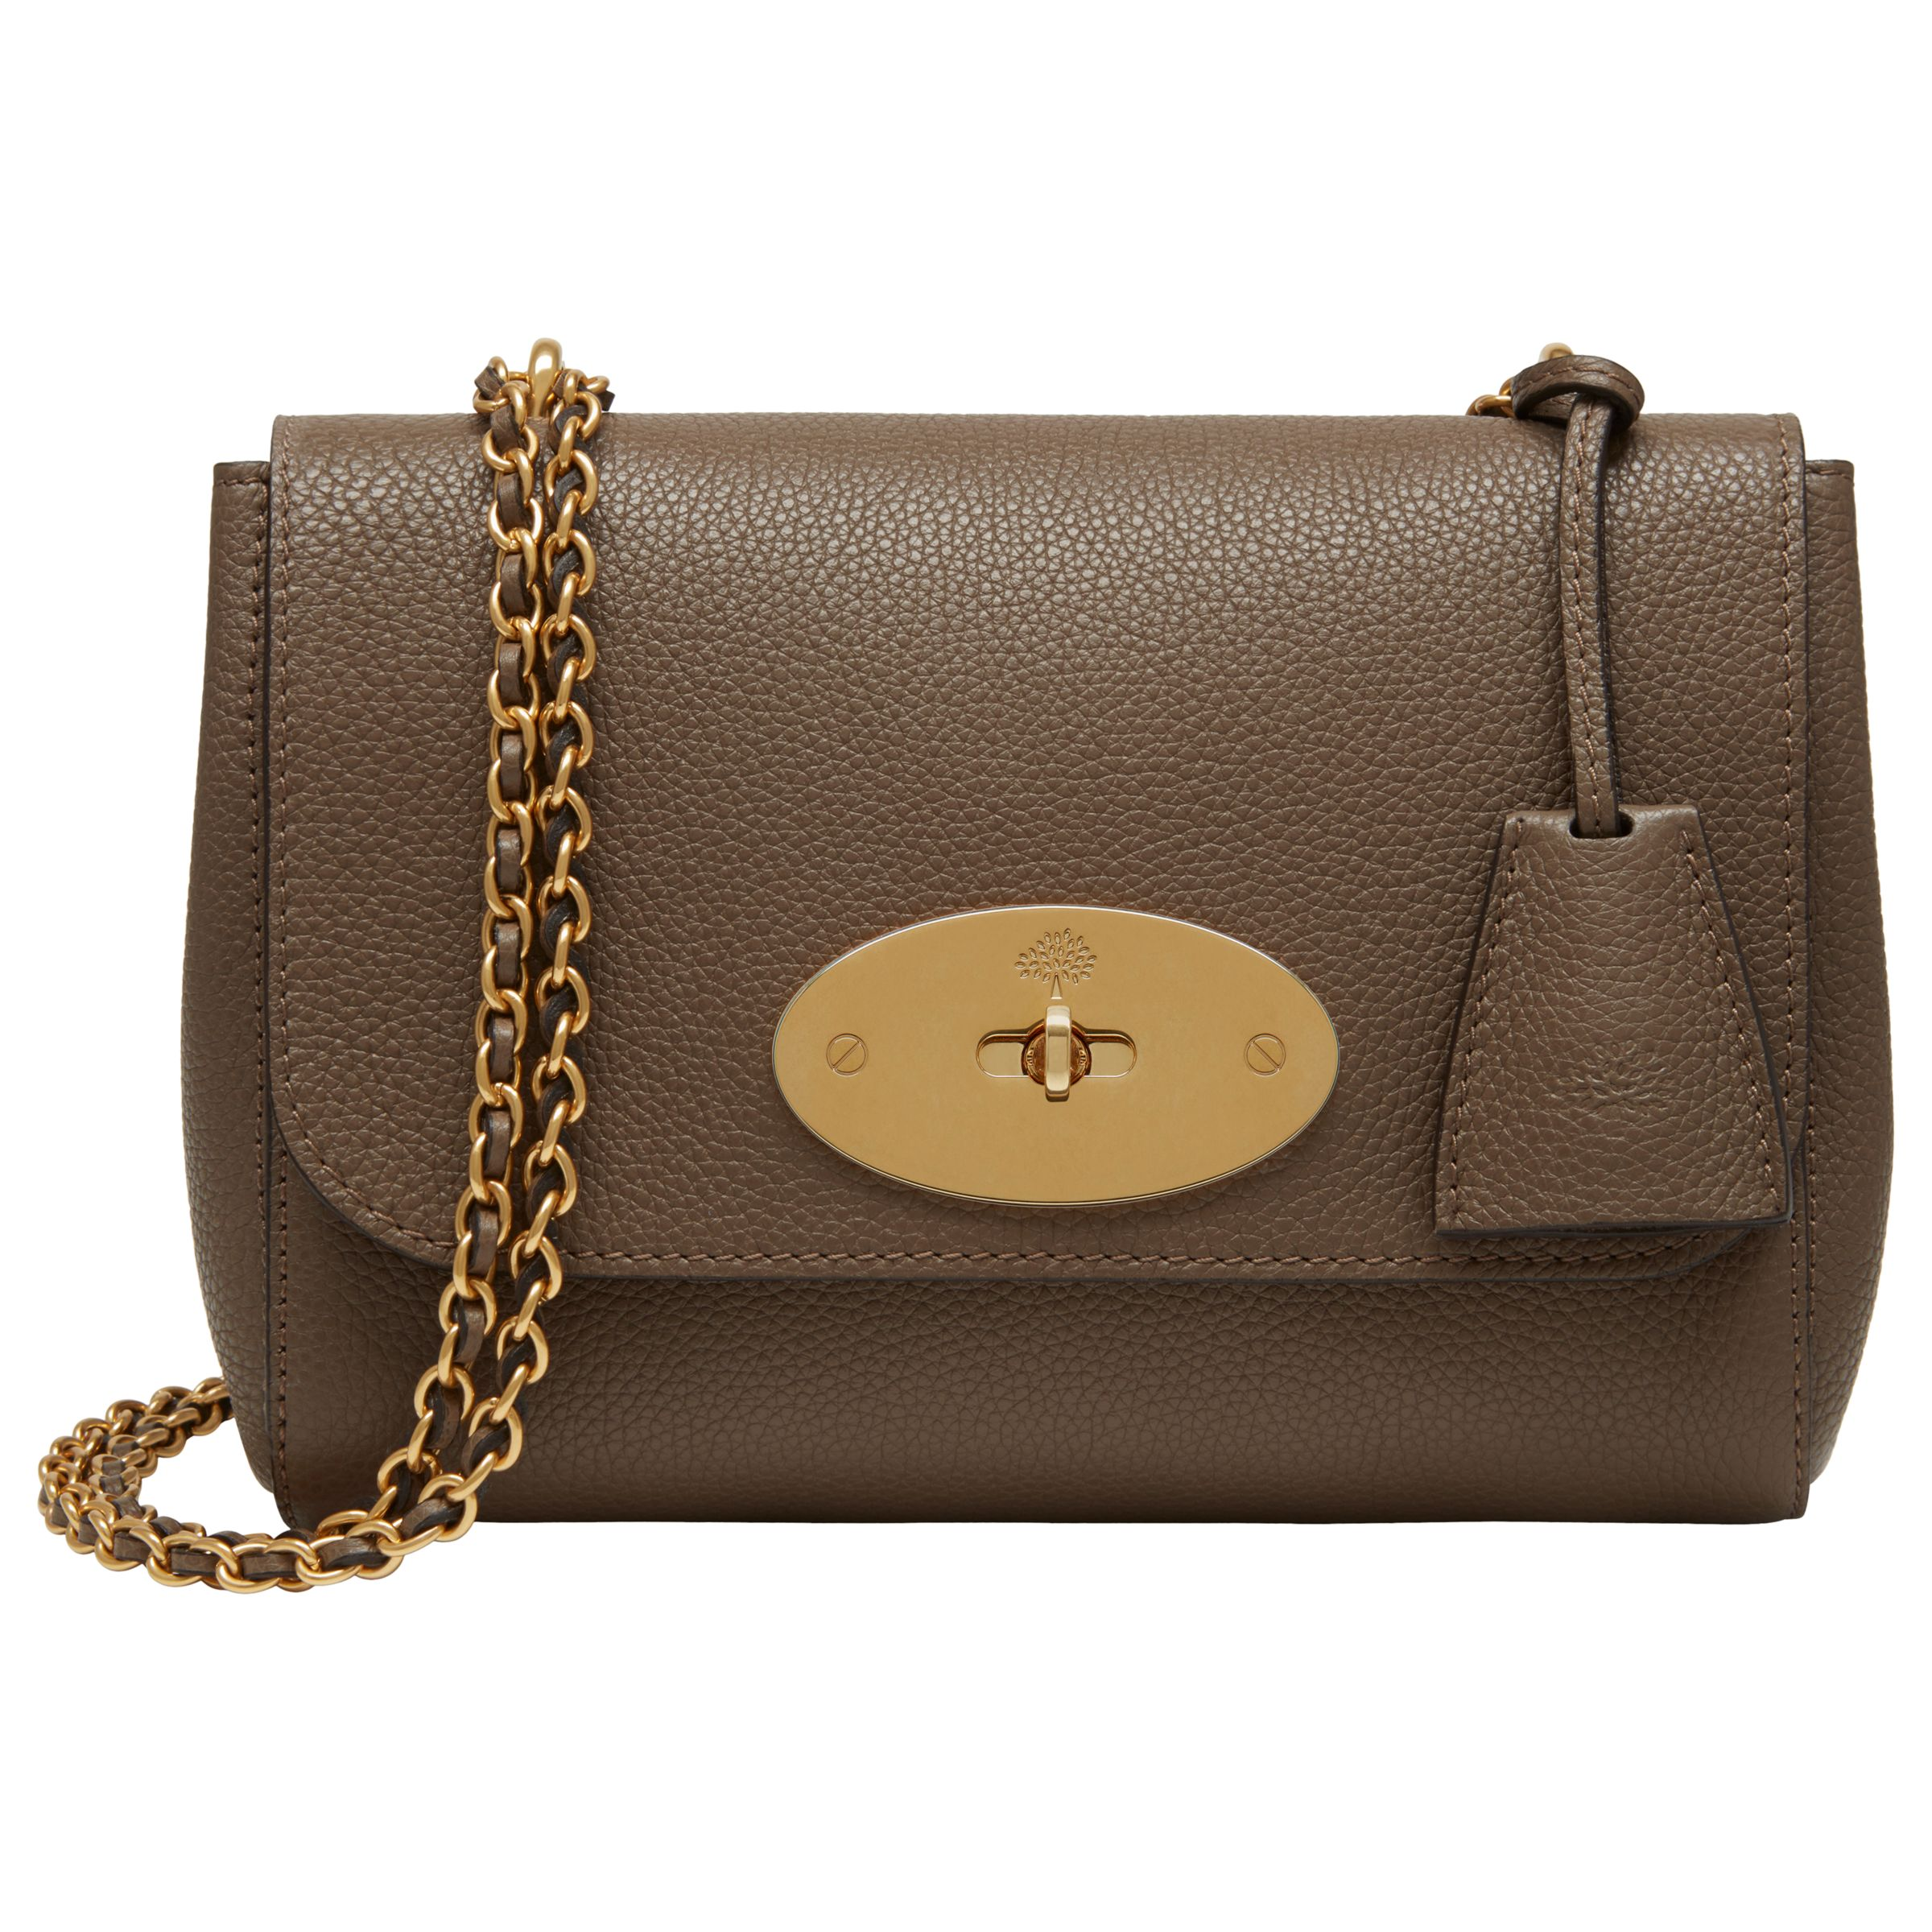 1bda8d8981be Mulberry Lily Small Classic Grain Leather Shoulder Bag at John Lewis    Partners